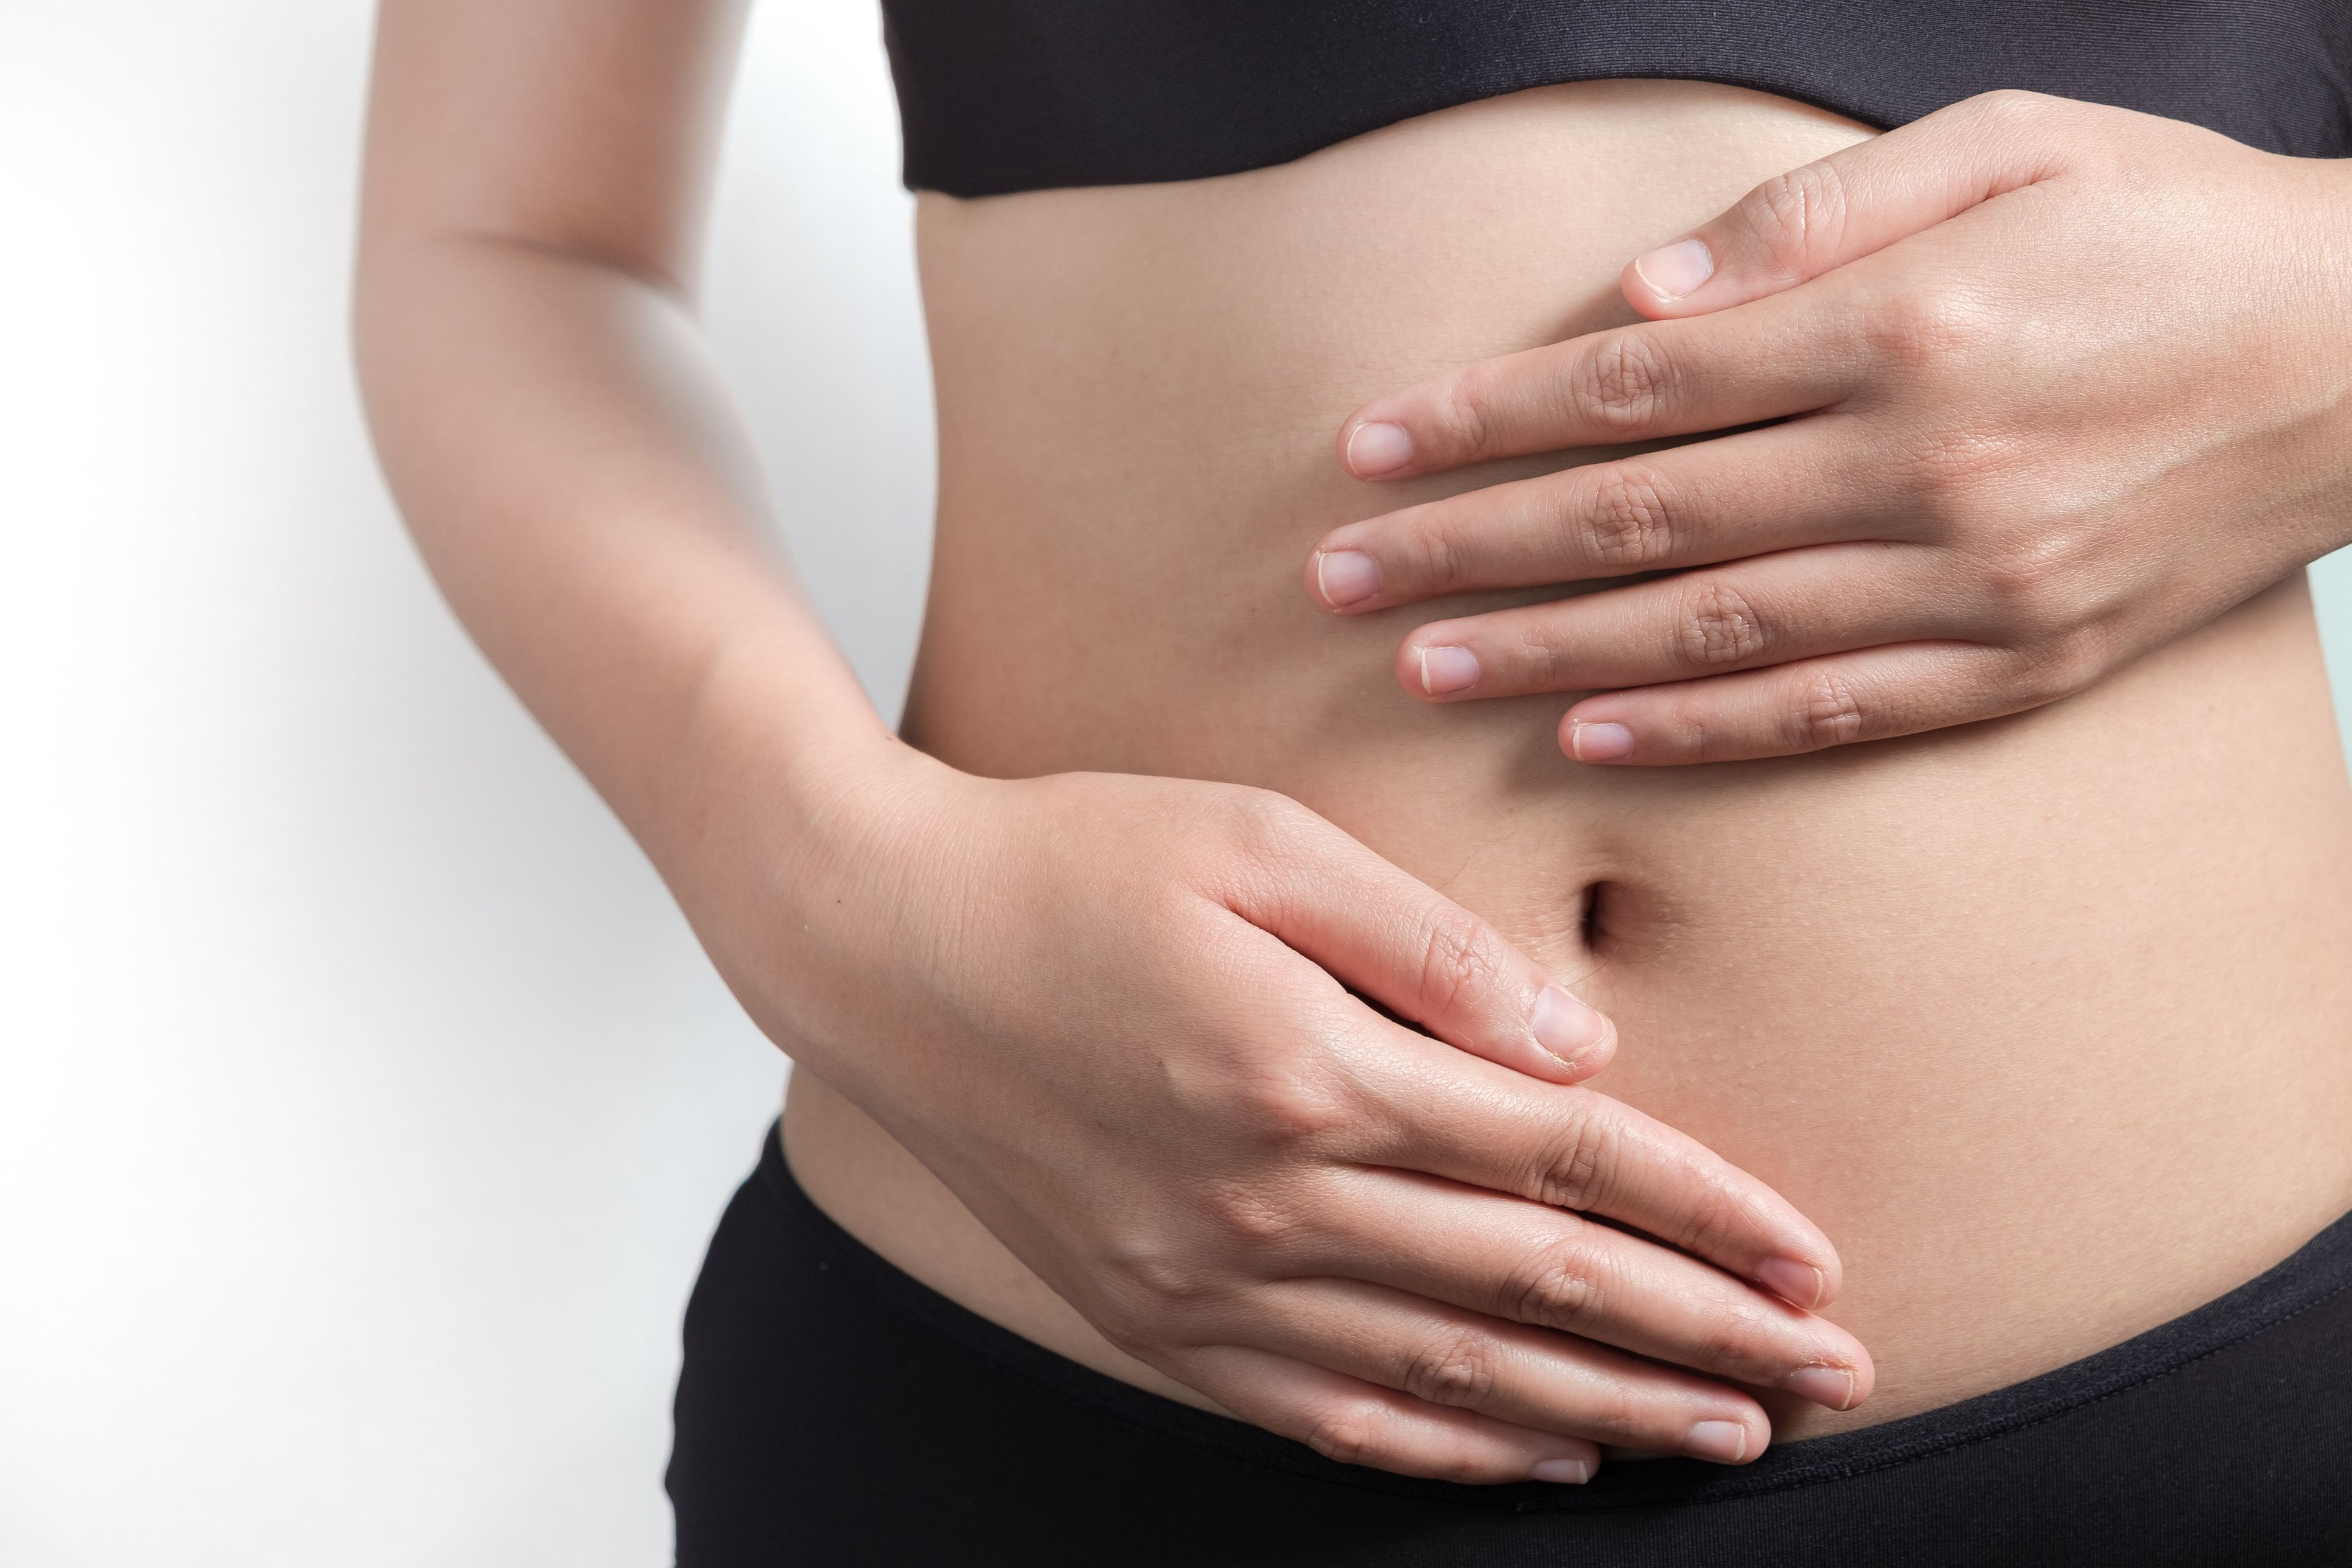 The 2-Minute Stomach Massage a Dietitian Swears by for Better Digestion